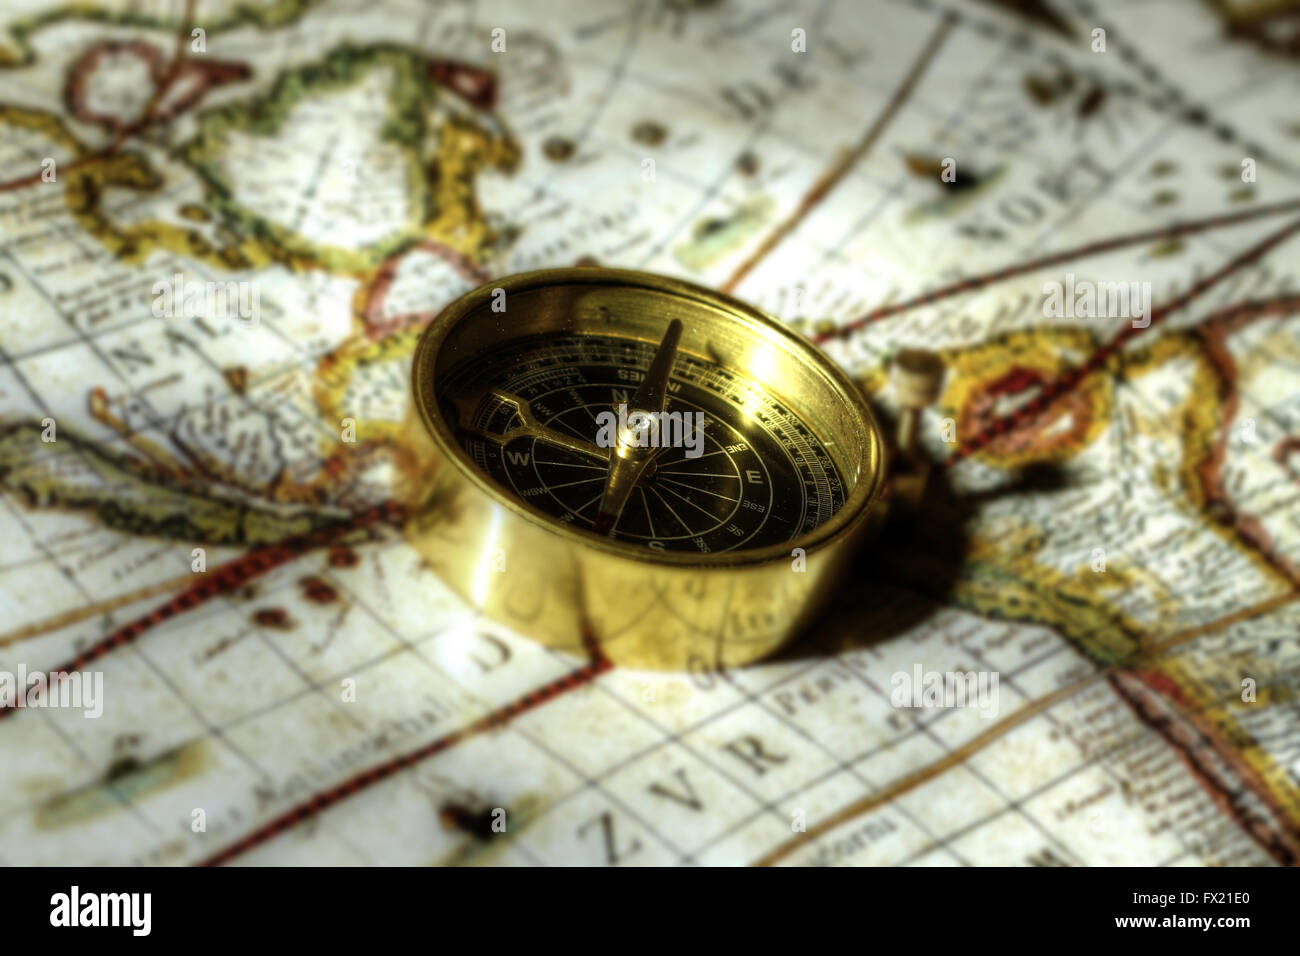 Antique brass compass on map - Stock Image